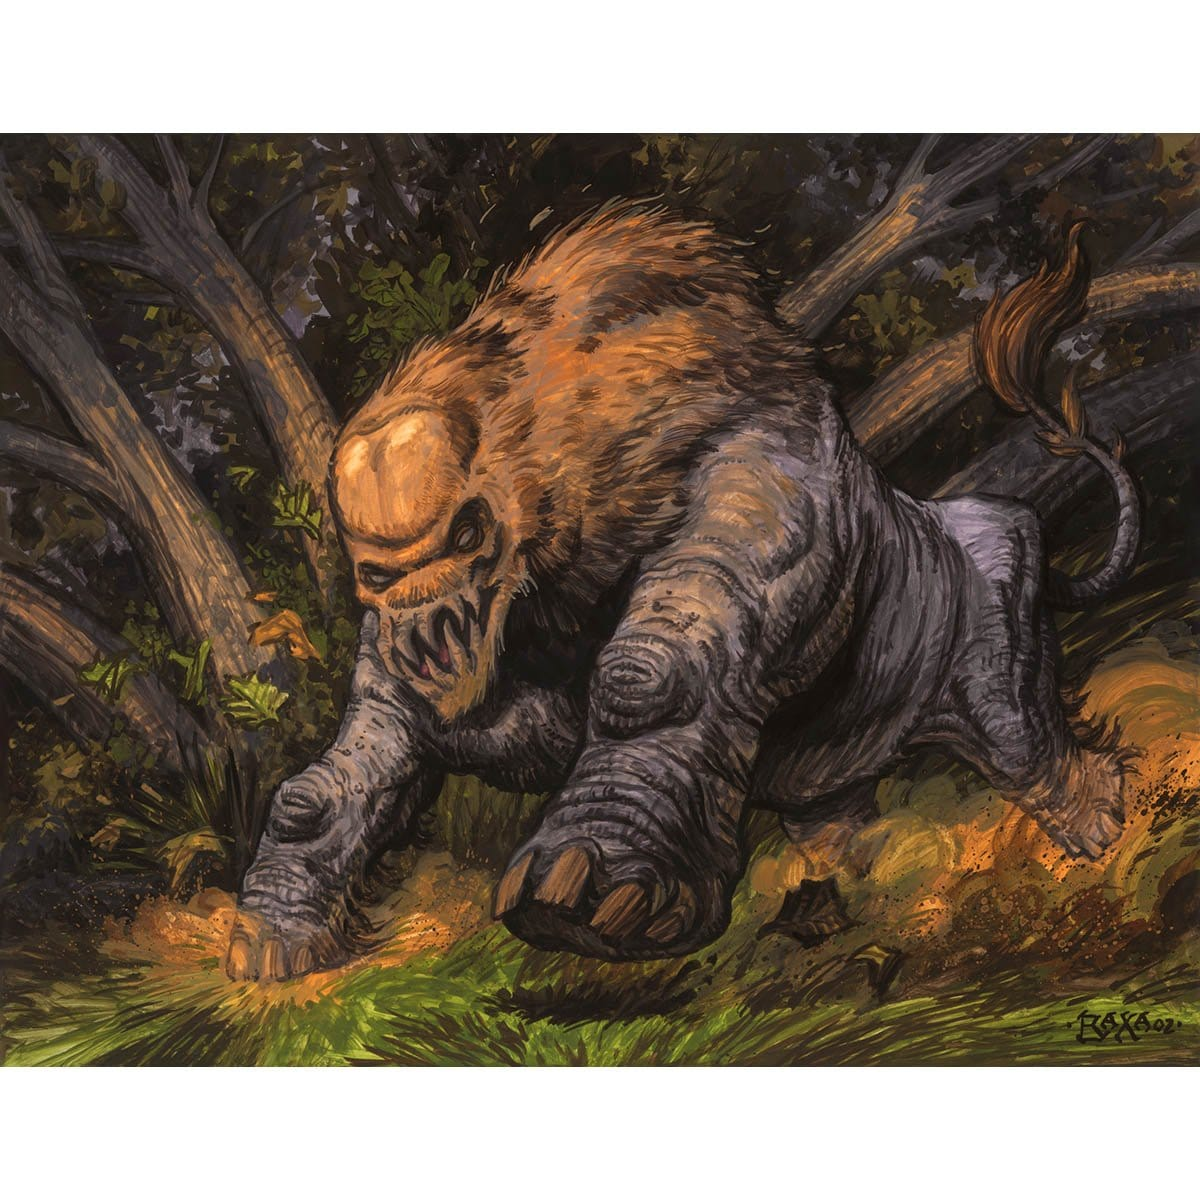 Hunted Wumpus Print - Print - Original Magic Art - Accessories for Magic the Gathering and other card games